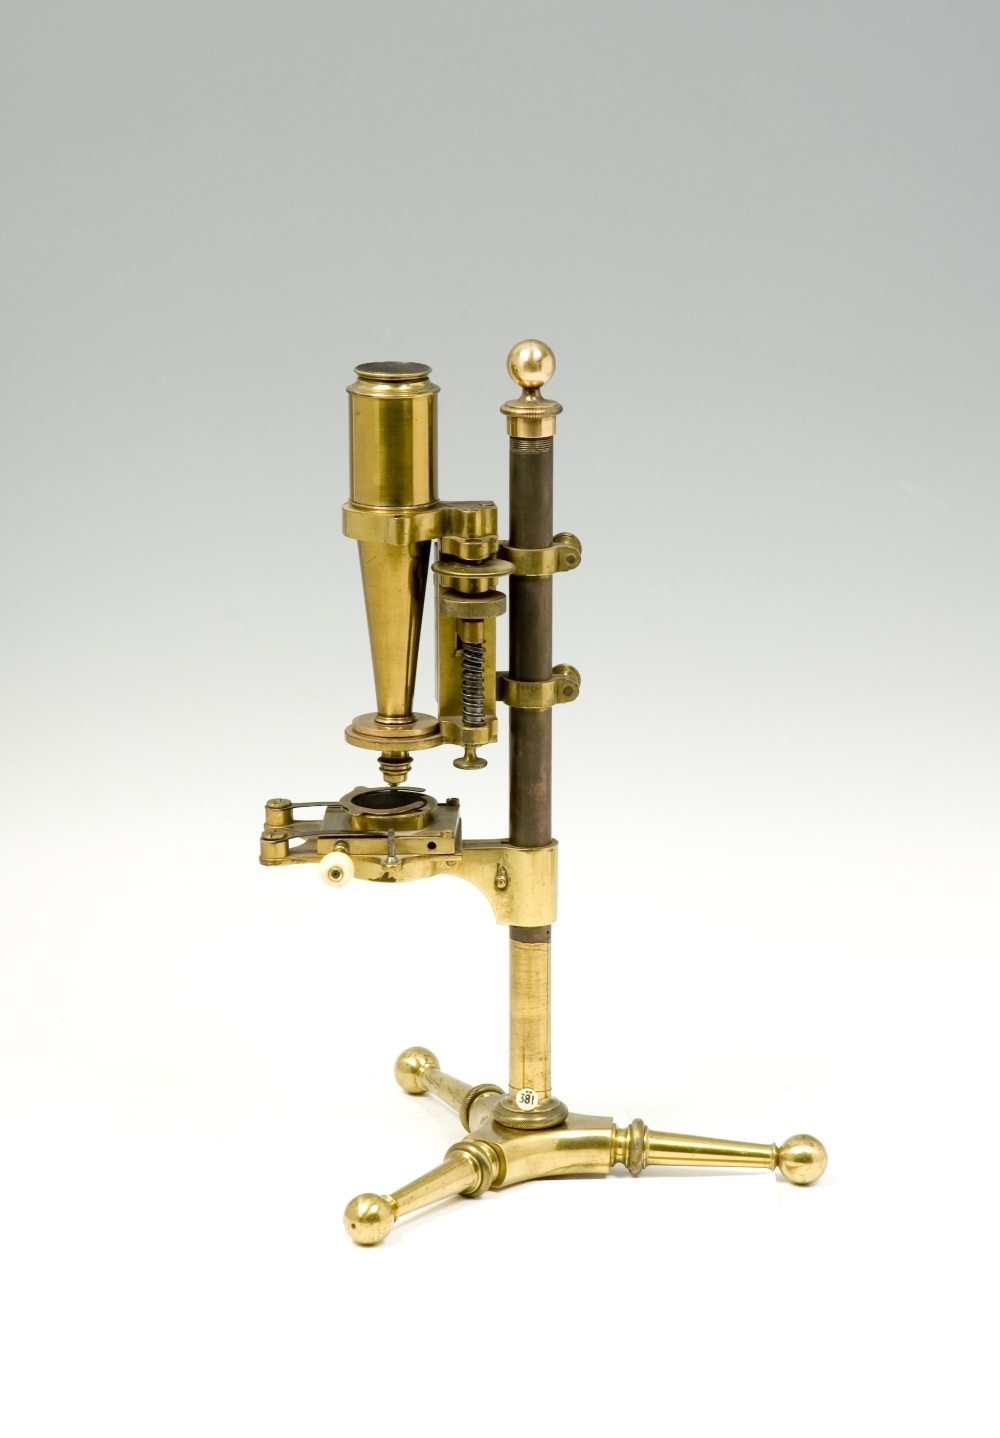 preview image for Compound Microscope